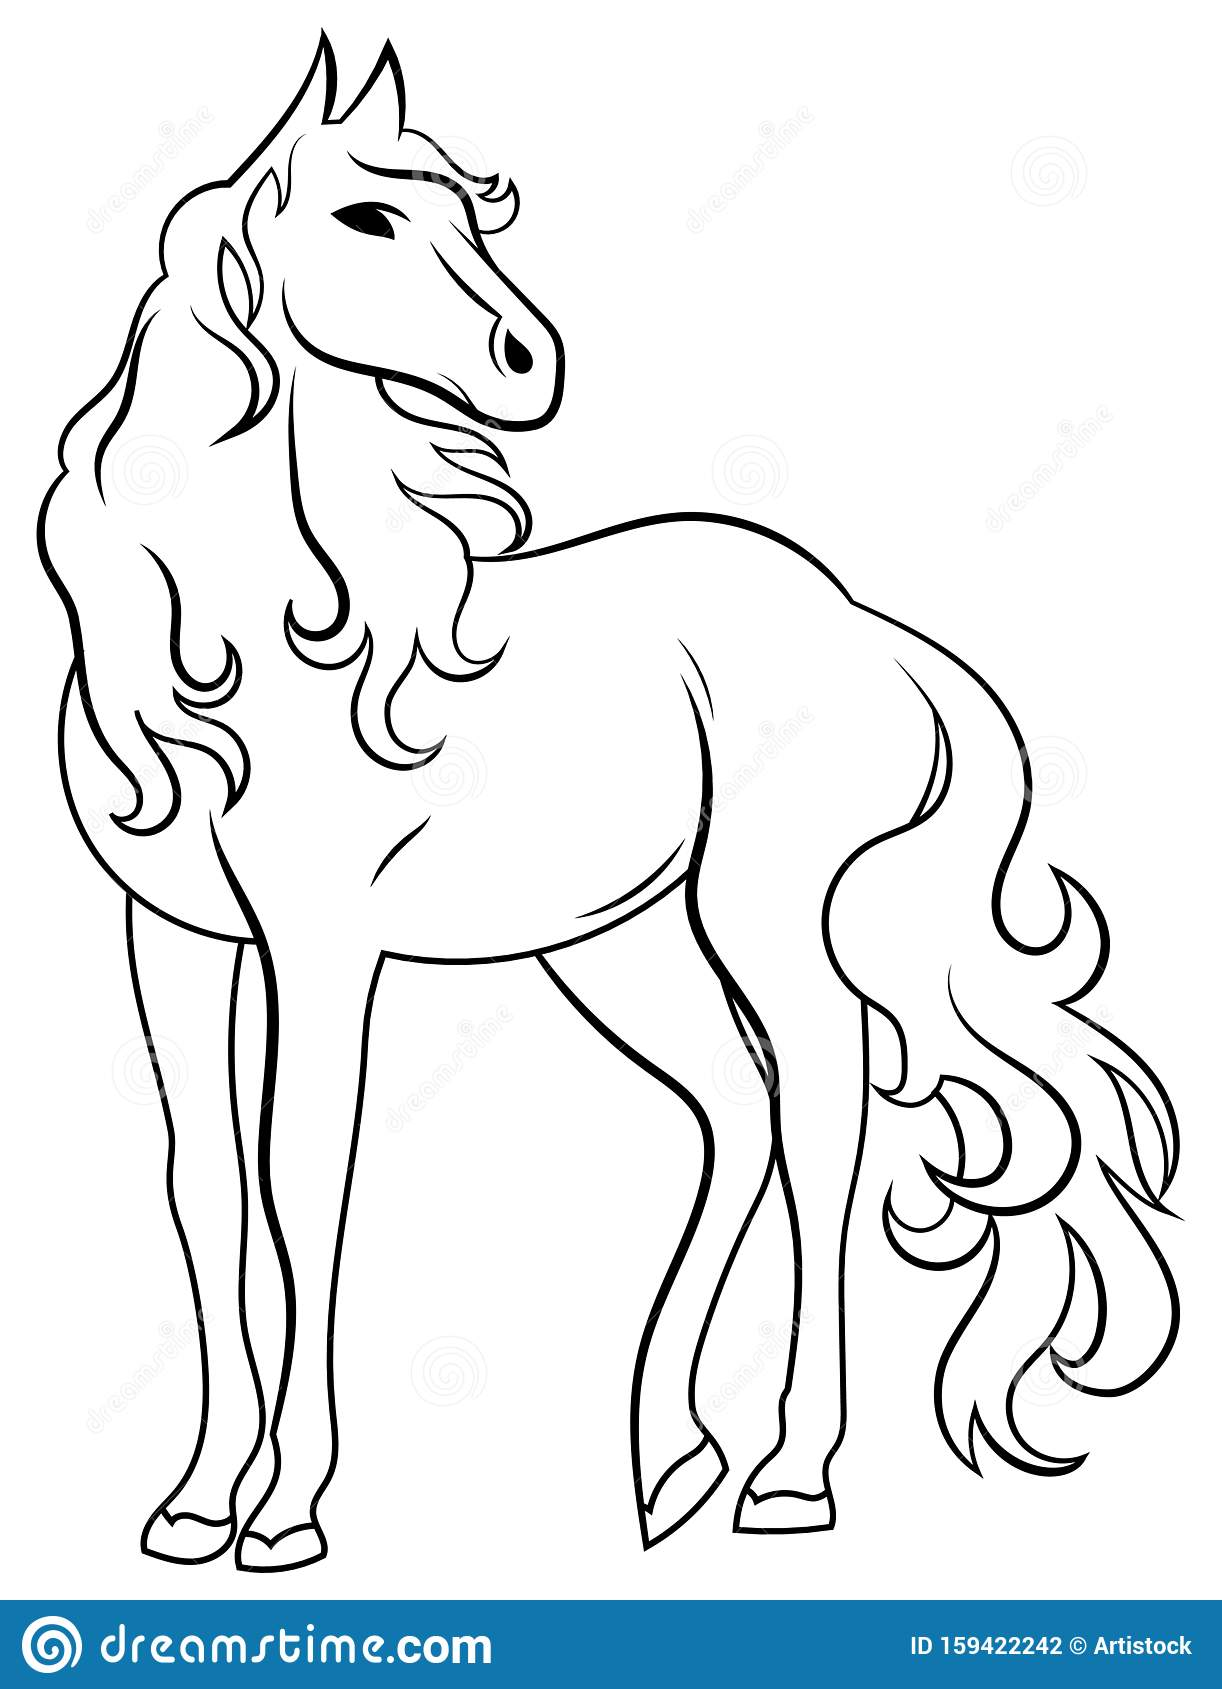 Black And White Illustration Of A Wild Horse Vector Drawing Of A Stylized Mustang Tattoo Stock Vector Illustration Of Animal Freedom 159422242